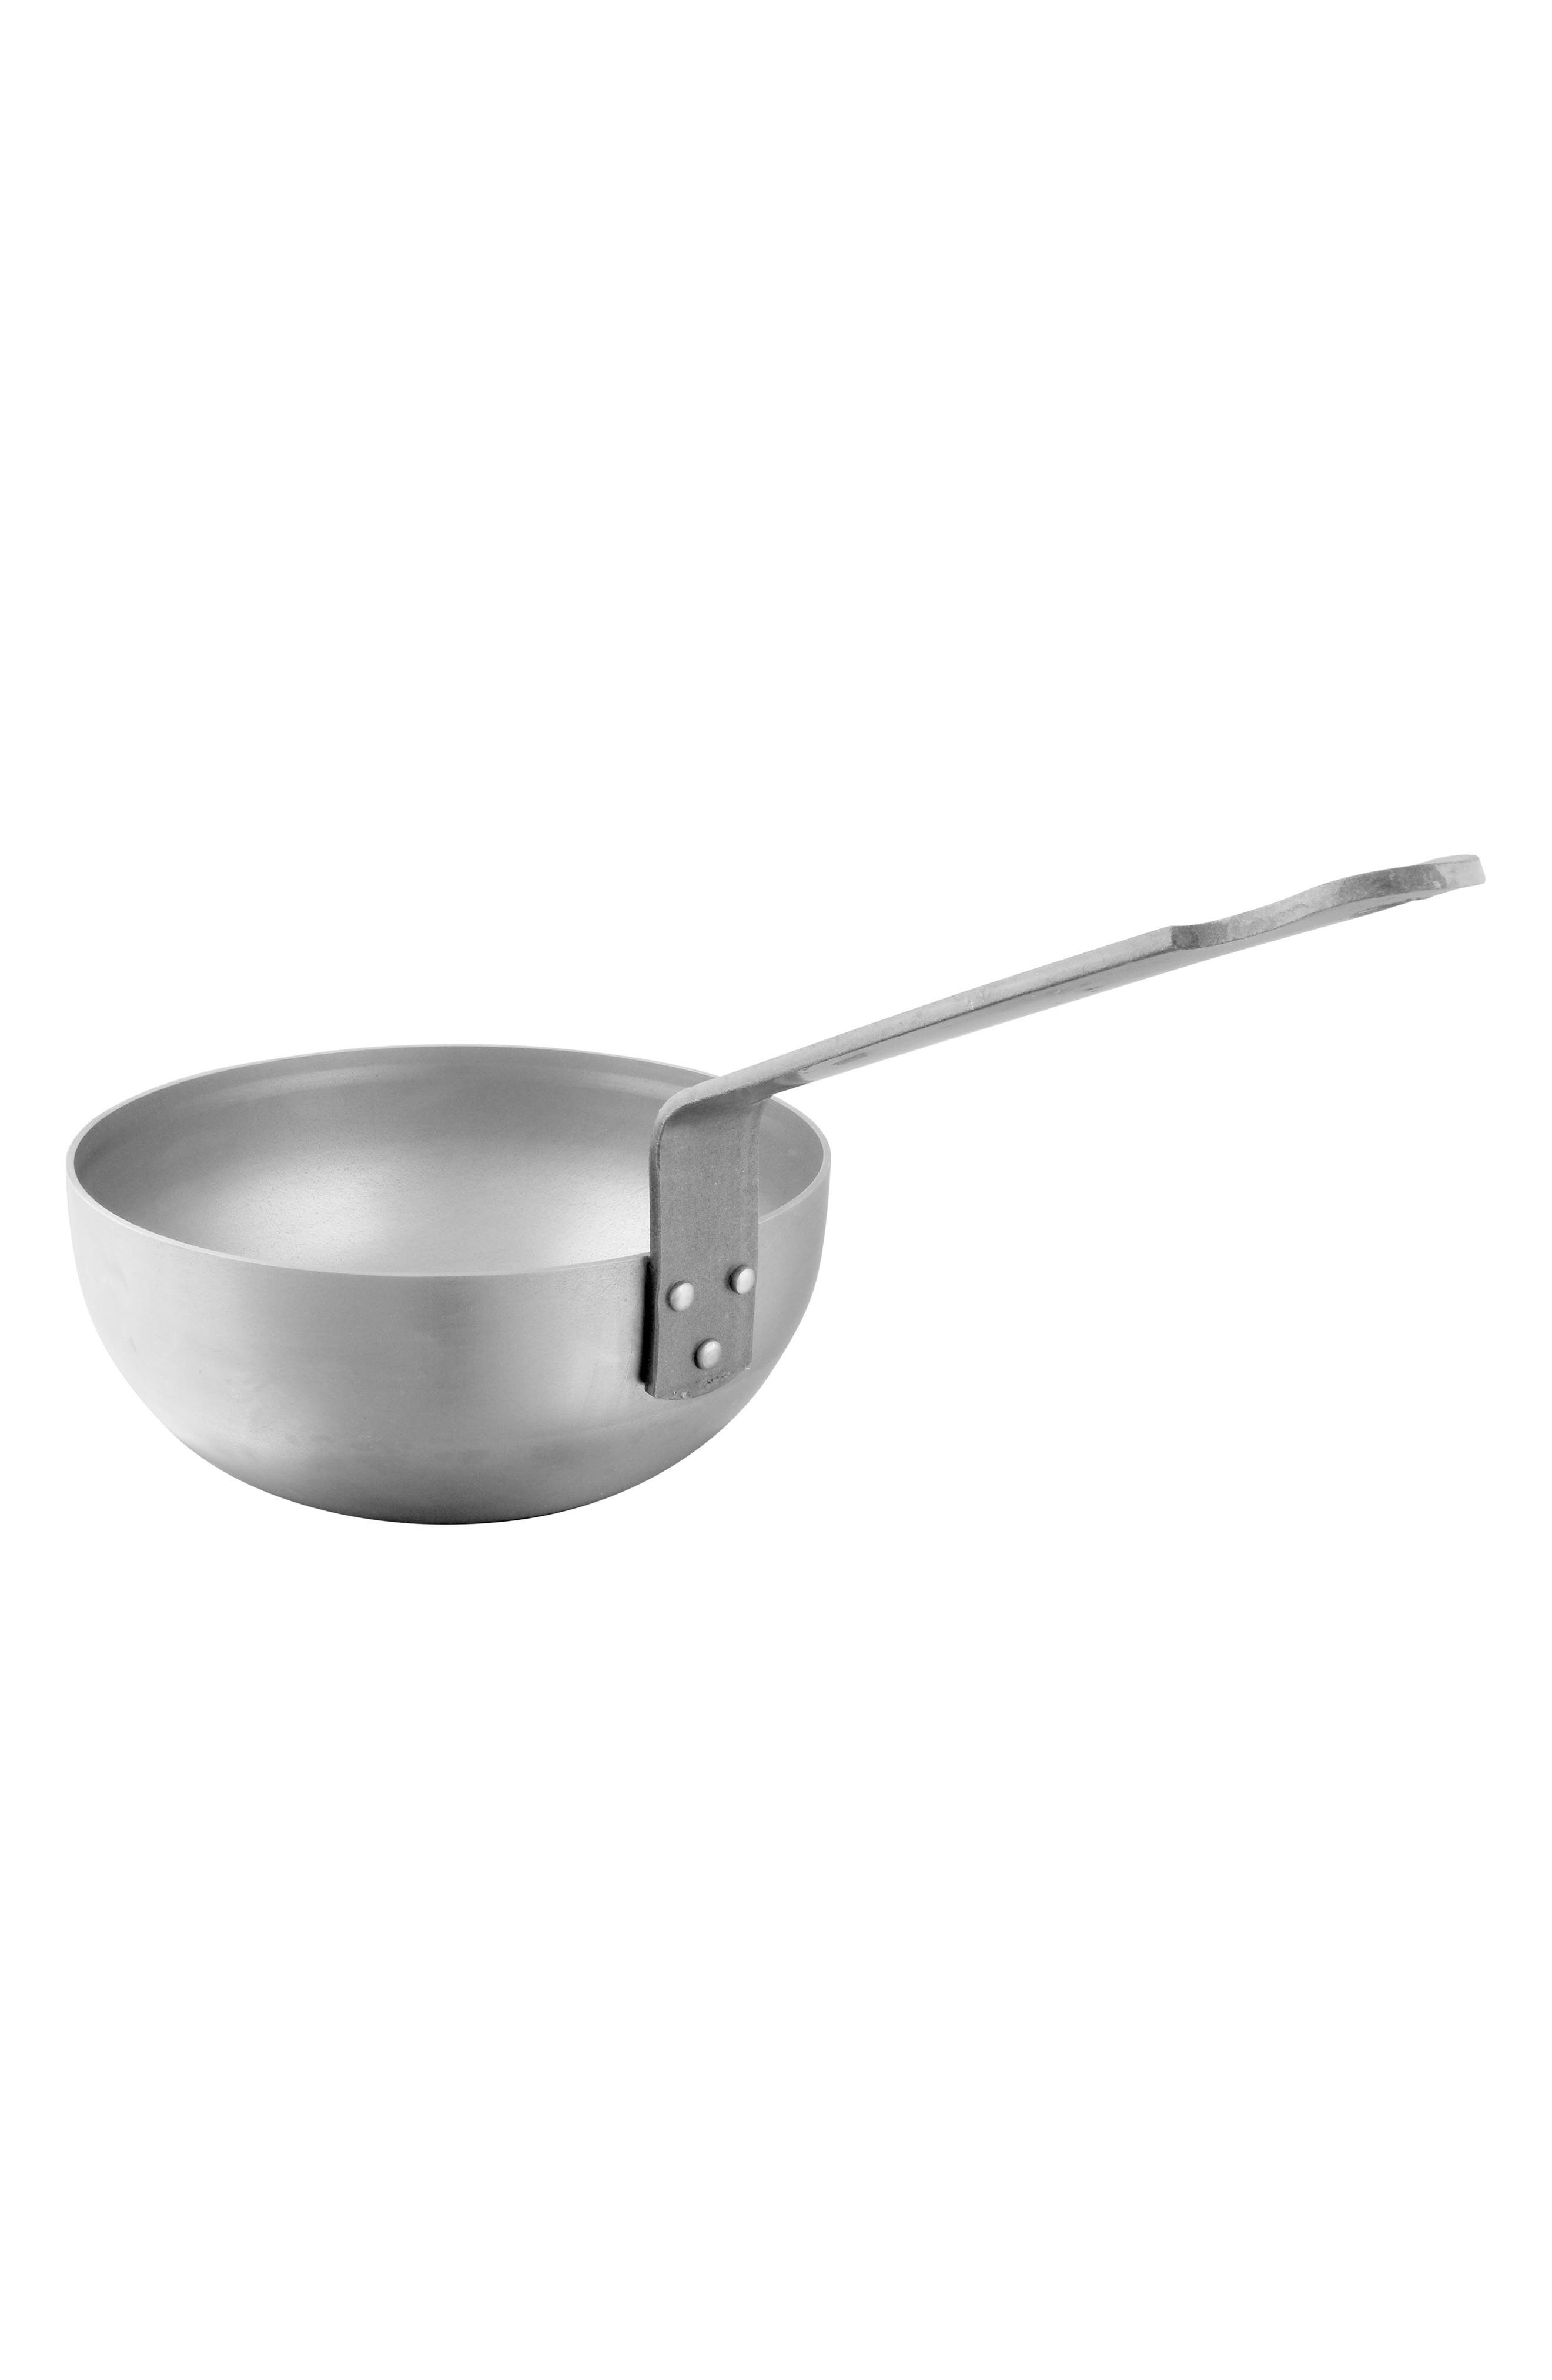 Alternate Image 1 Selected - Mauviel M'steel Carbon Steel Splayed Curved Sauté Pan